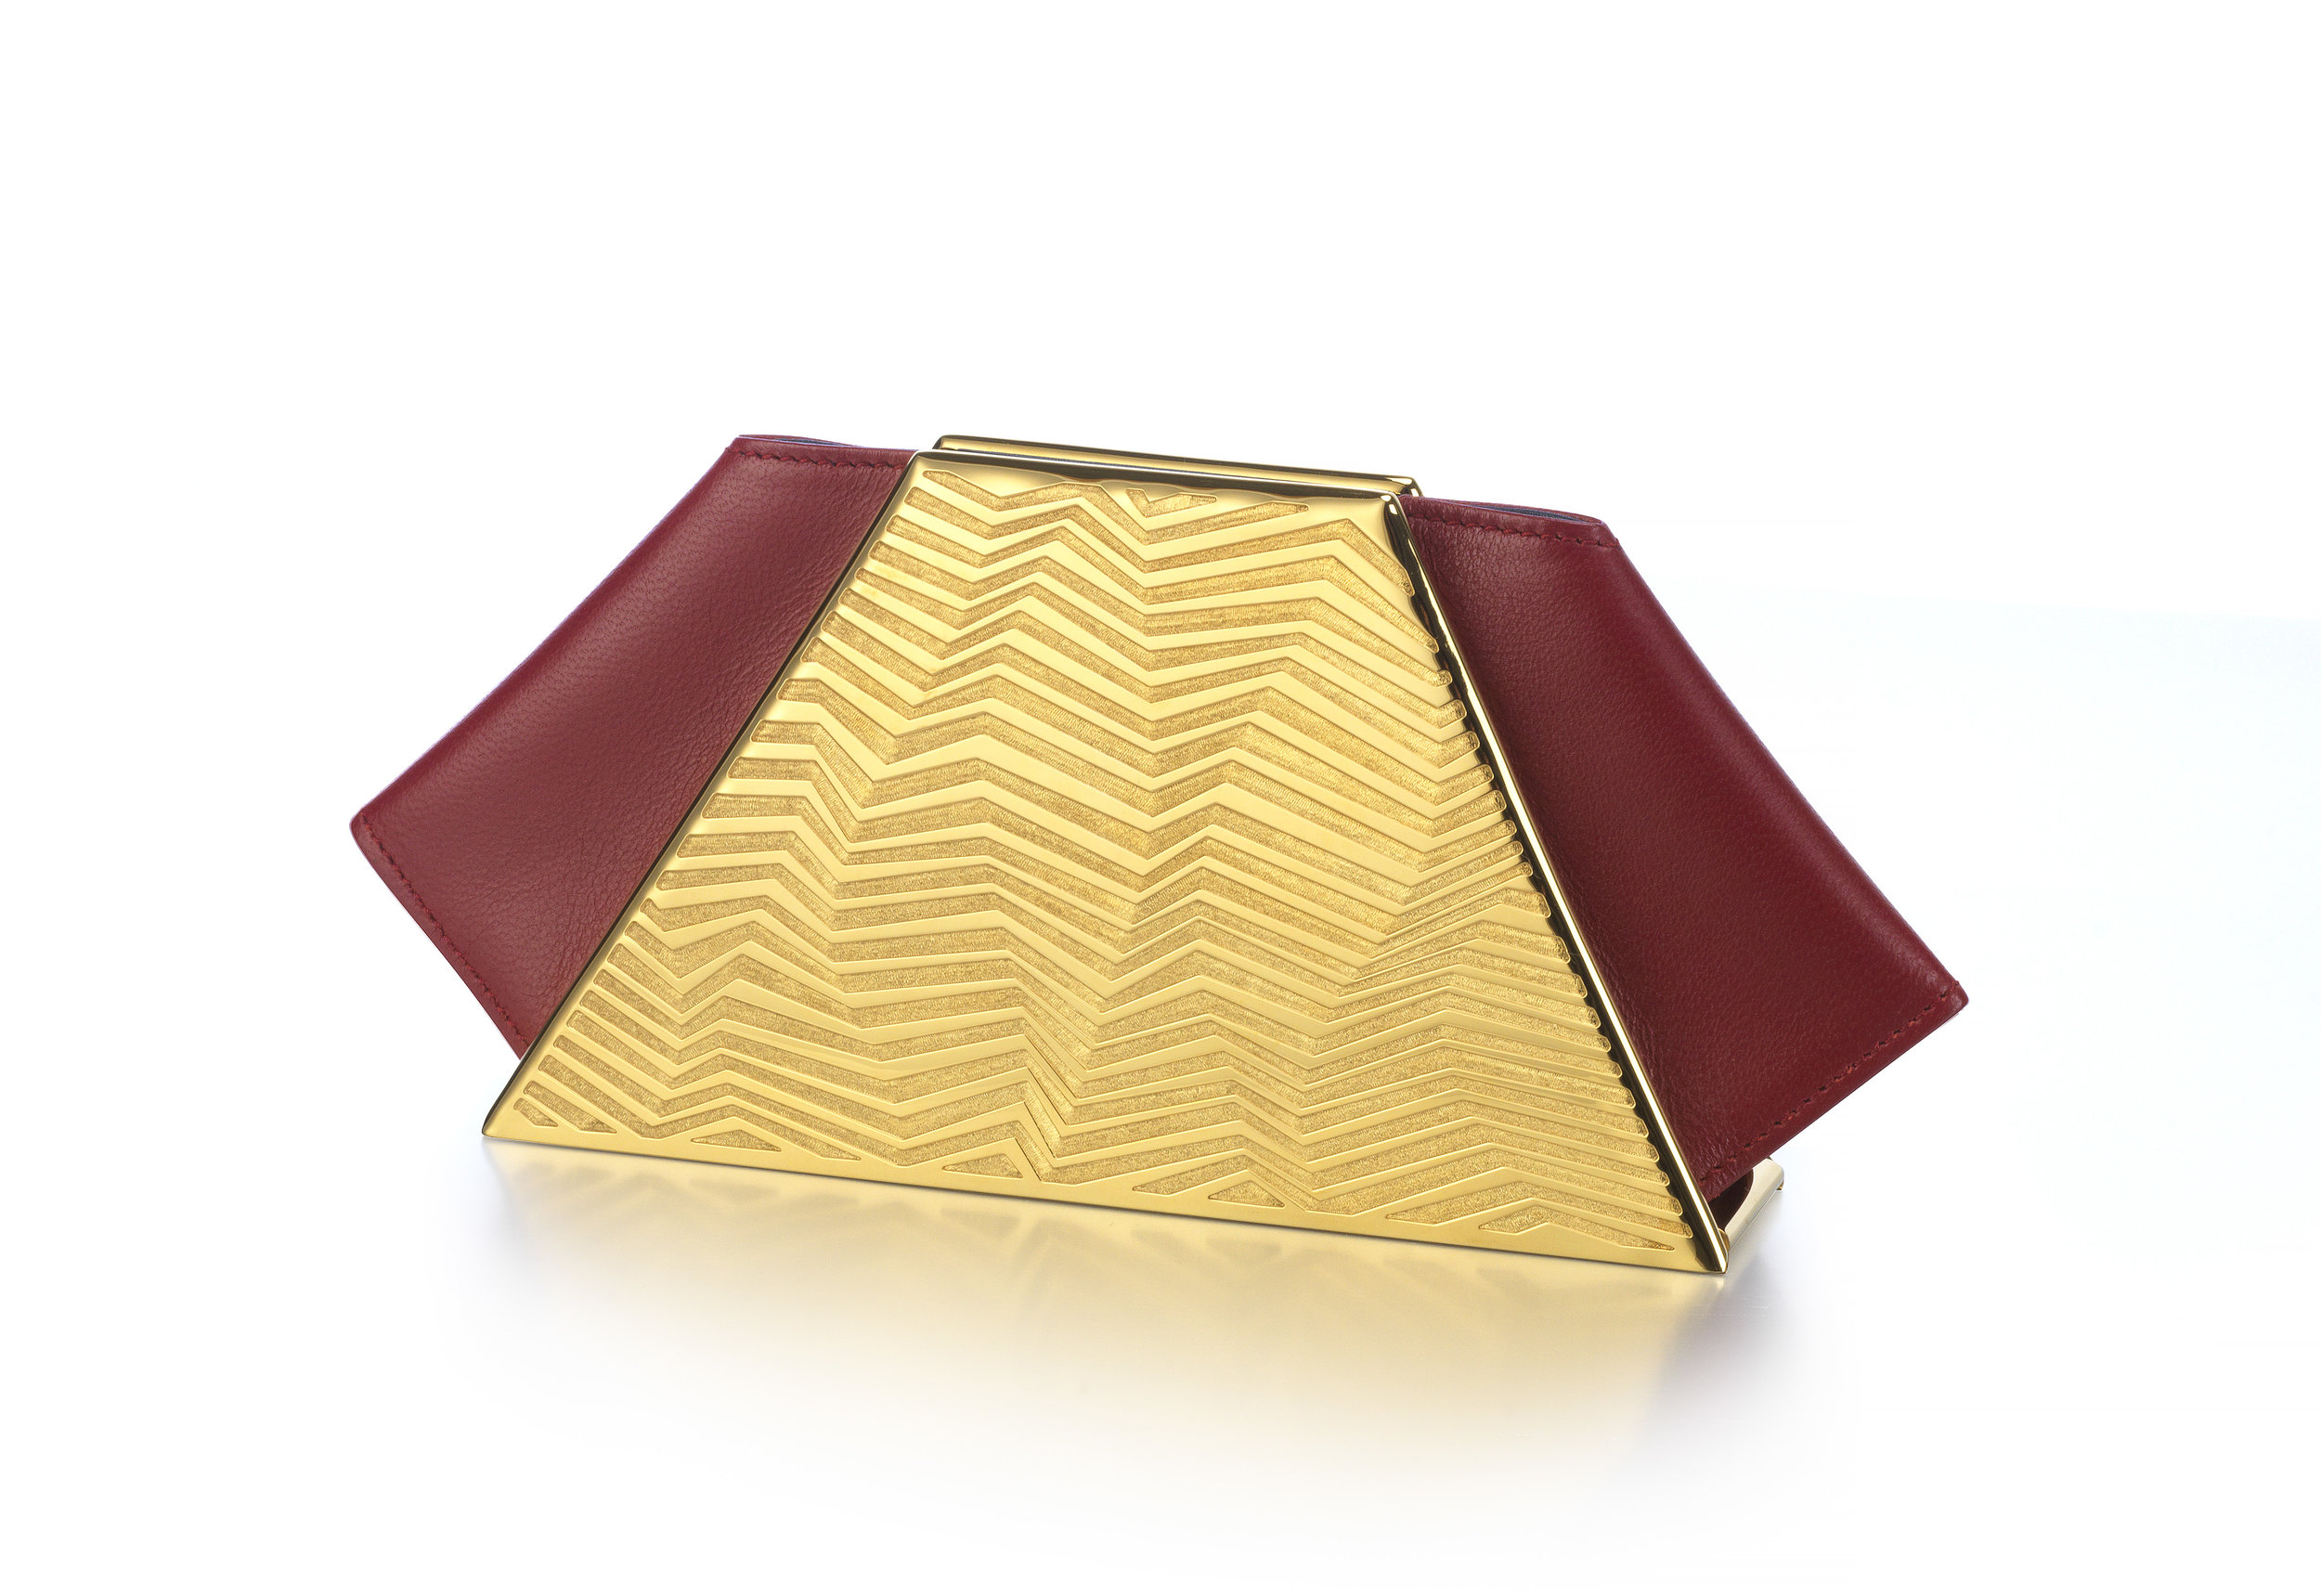 KJ - Zigzag gold clutch bag .jpg